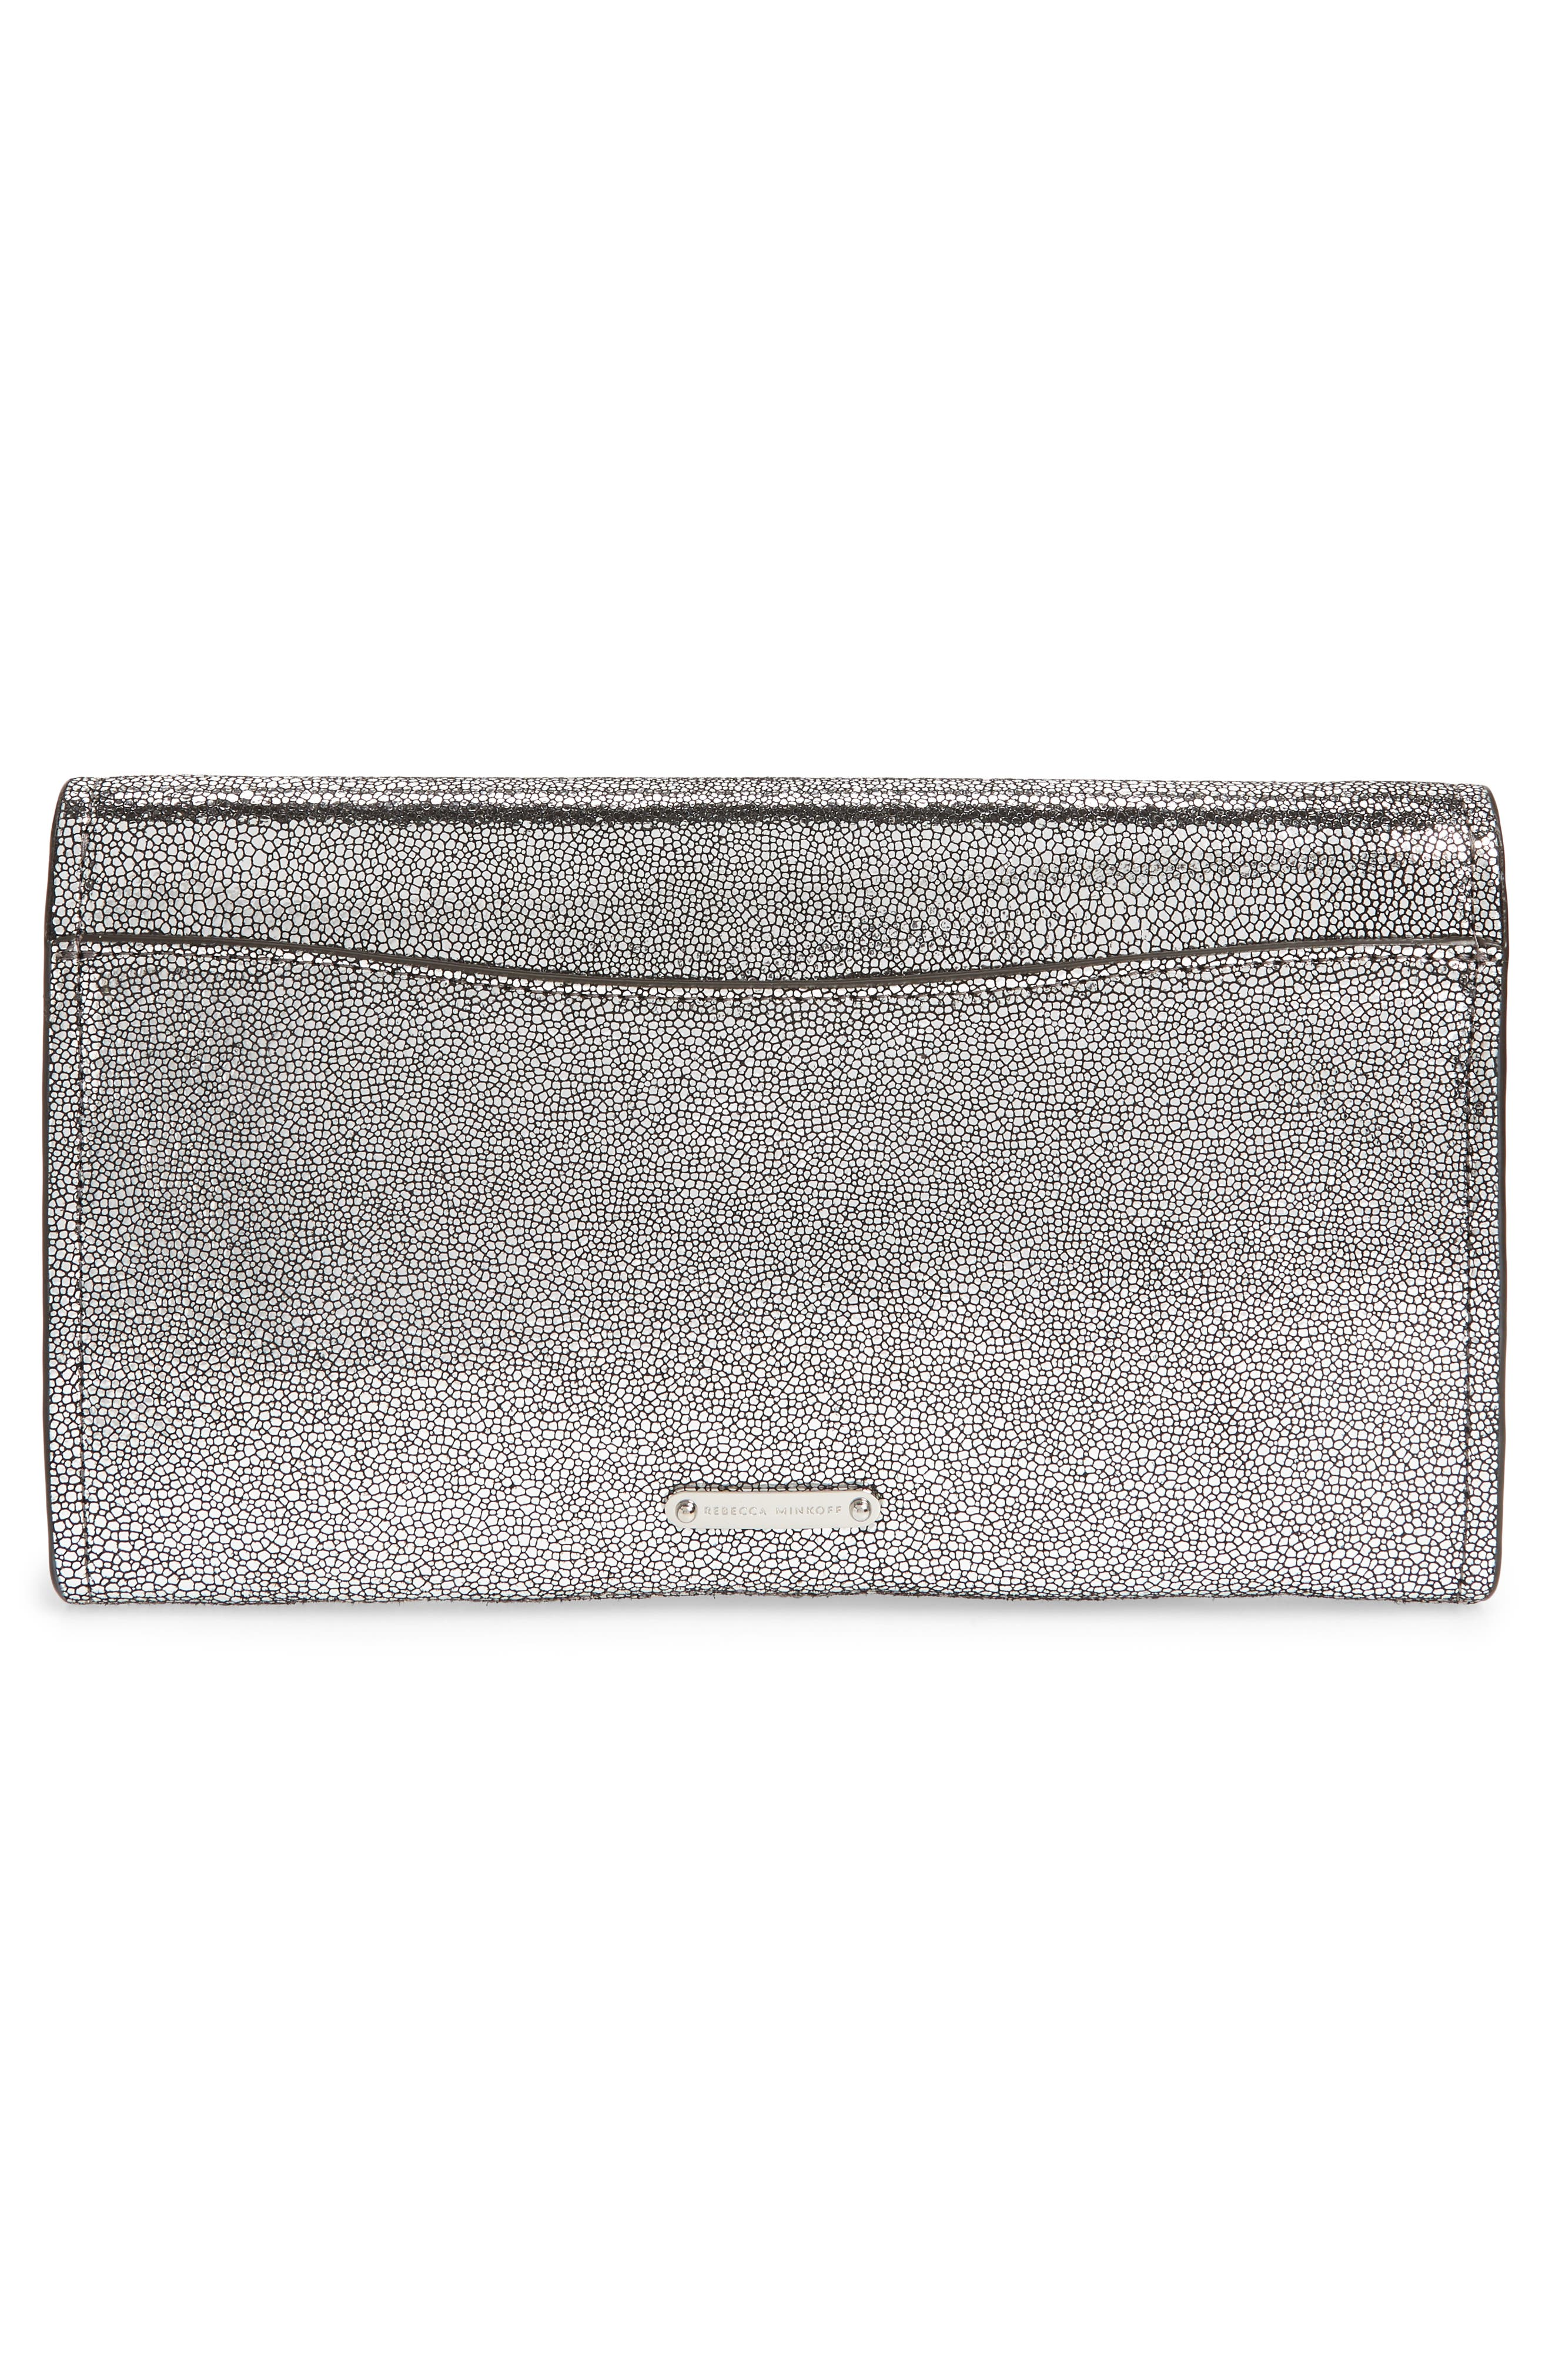 Jean Metallic Leather Clutch,                             Alternate thumbnail 3, color,                             SILVER